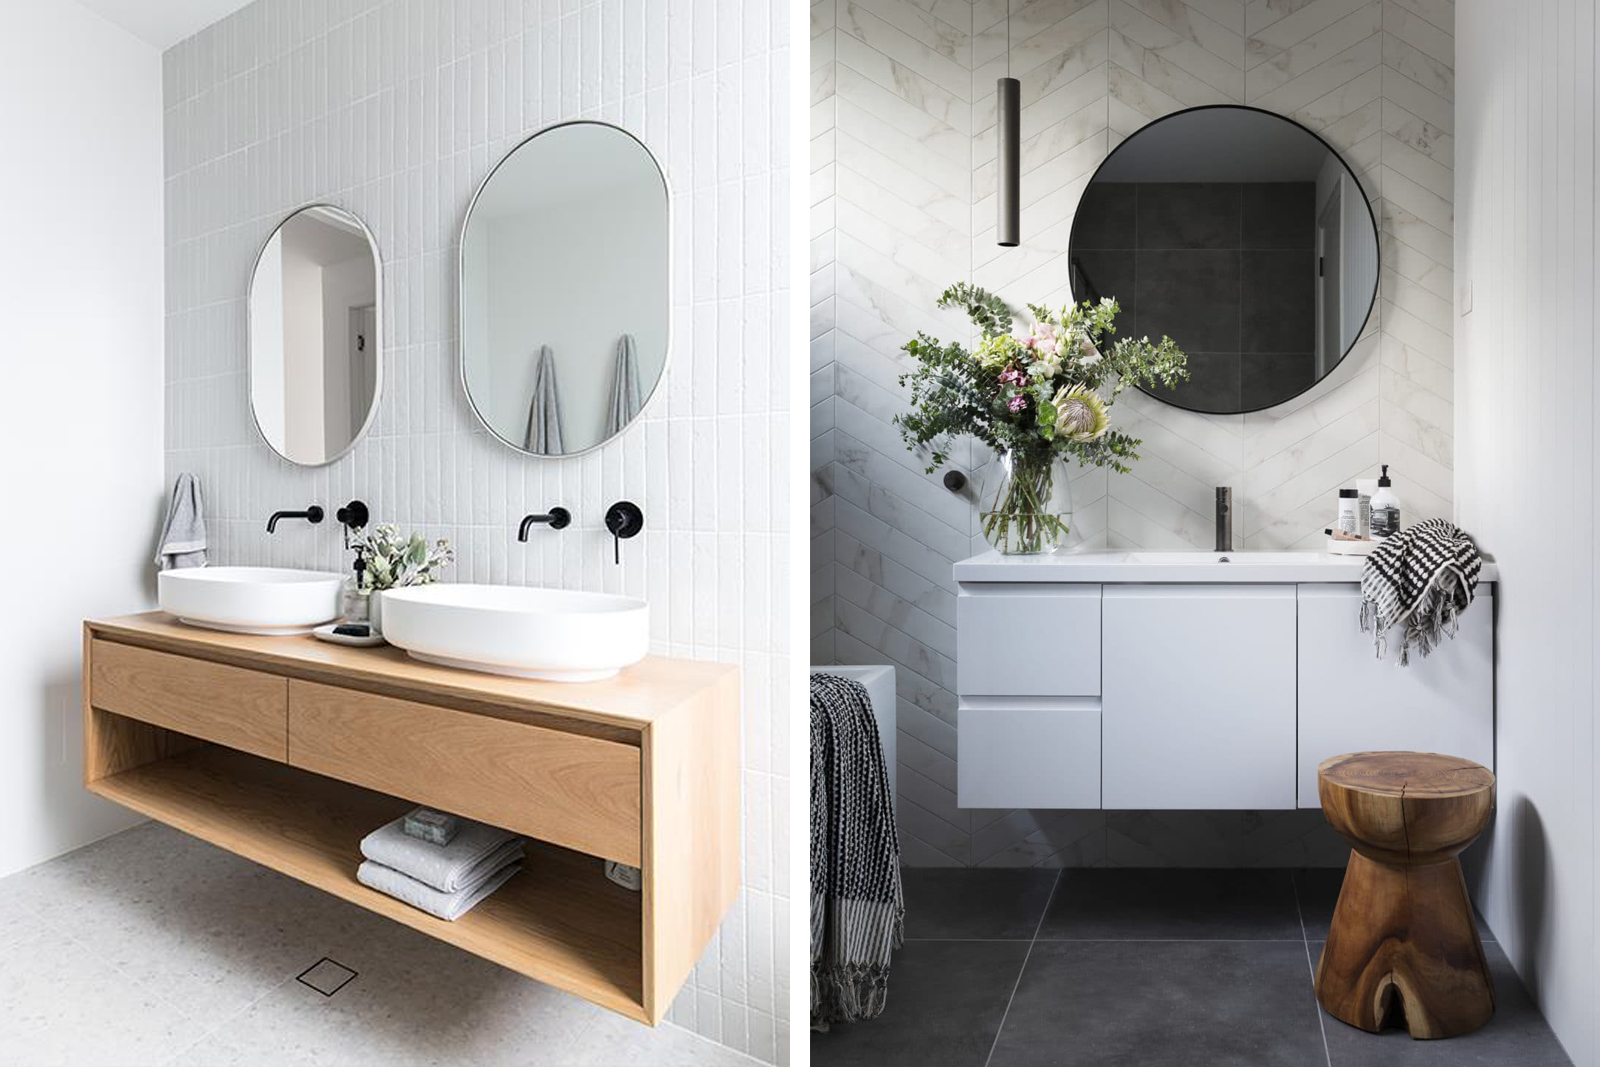 Cherie-Barber_Renovating-For-Profit_Small-Bathrooms-vanity